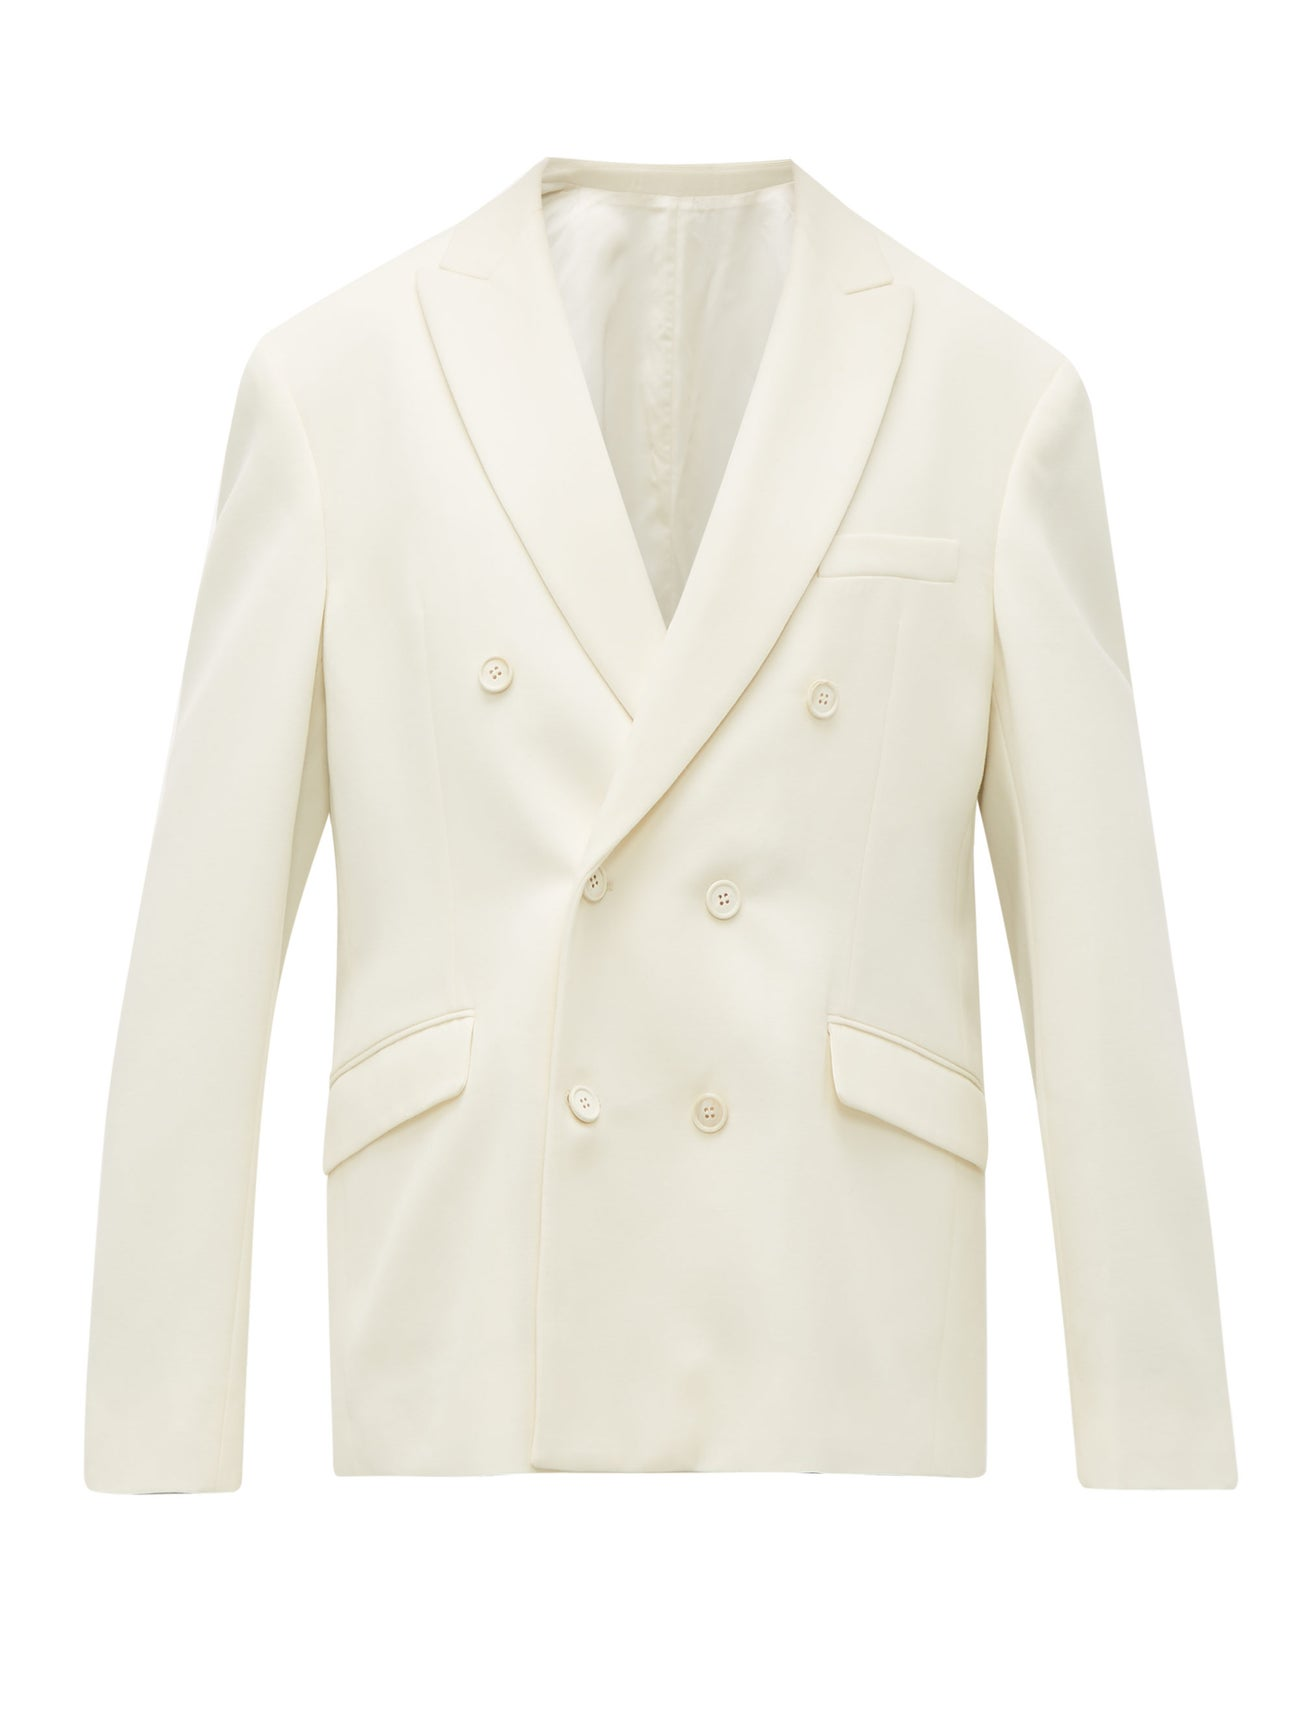 Release 04 double-breasted merino wool blazer by Wardrobe NYC, available on matchesfashion.com for EUR758 Gigi Hadid Outerwear Exact Product